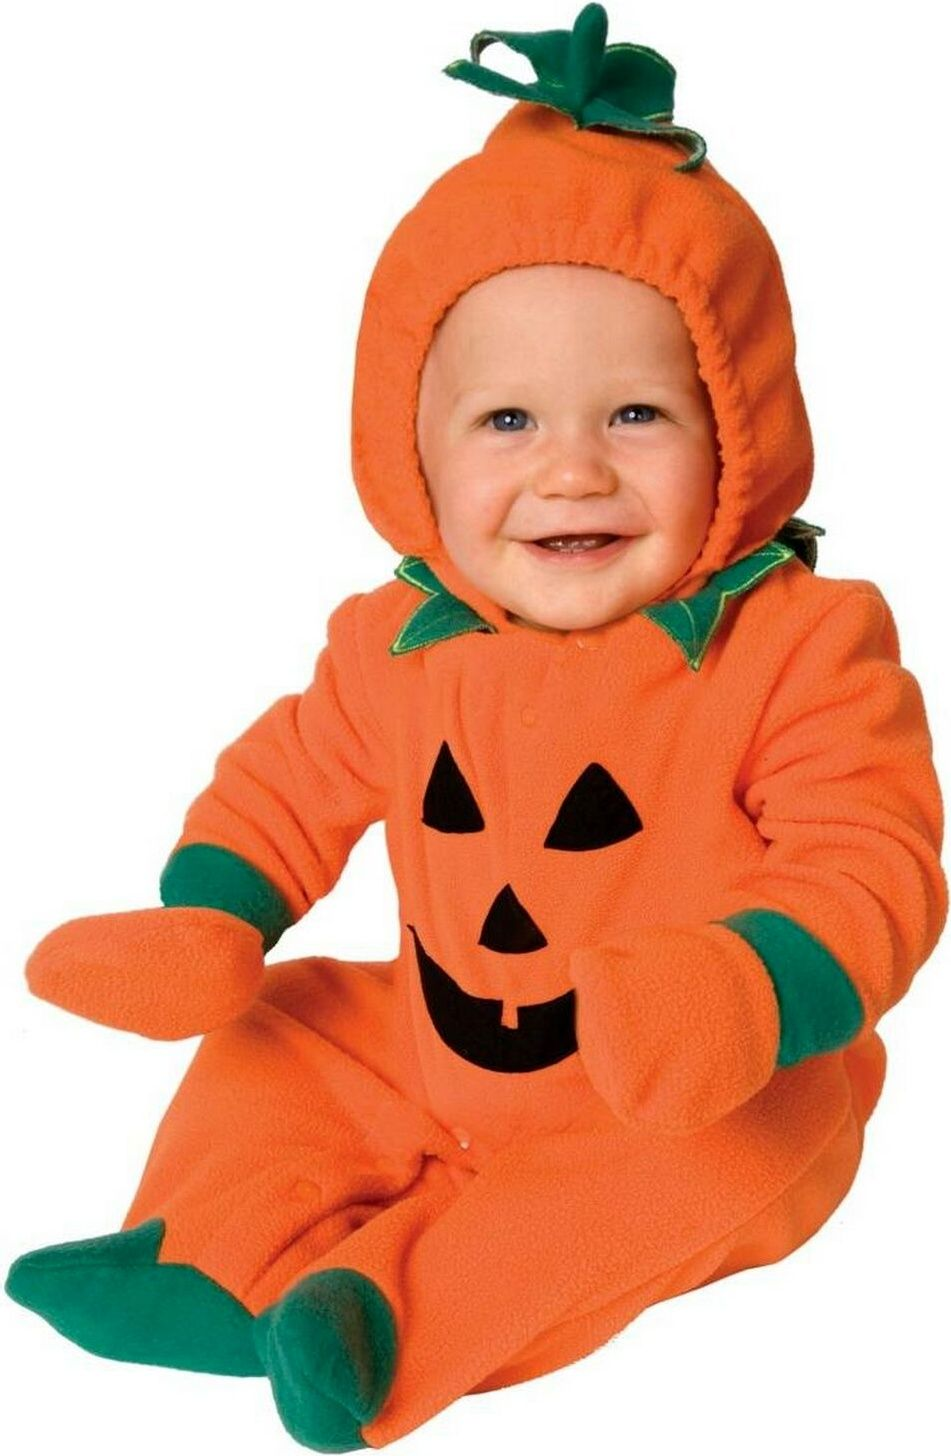 Precious Pumpkin Costume Baby Costume (Apparently aiming